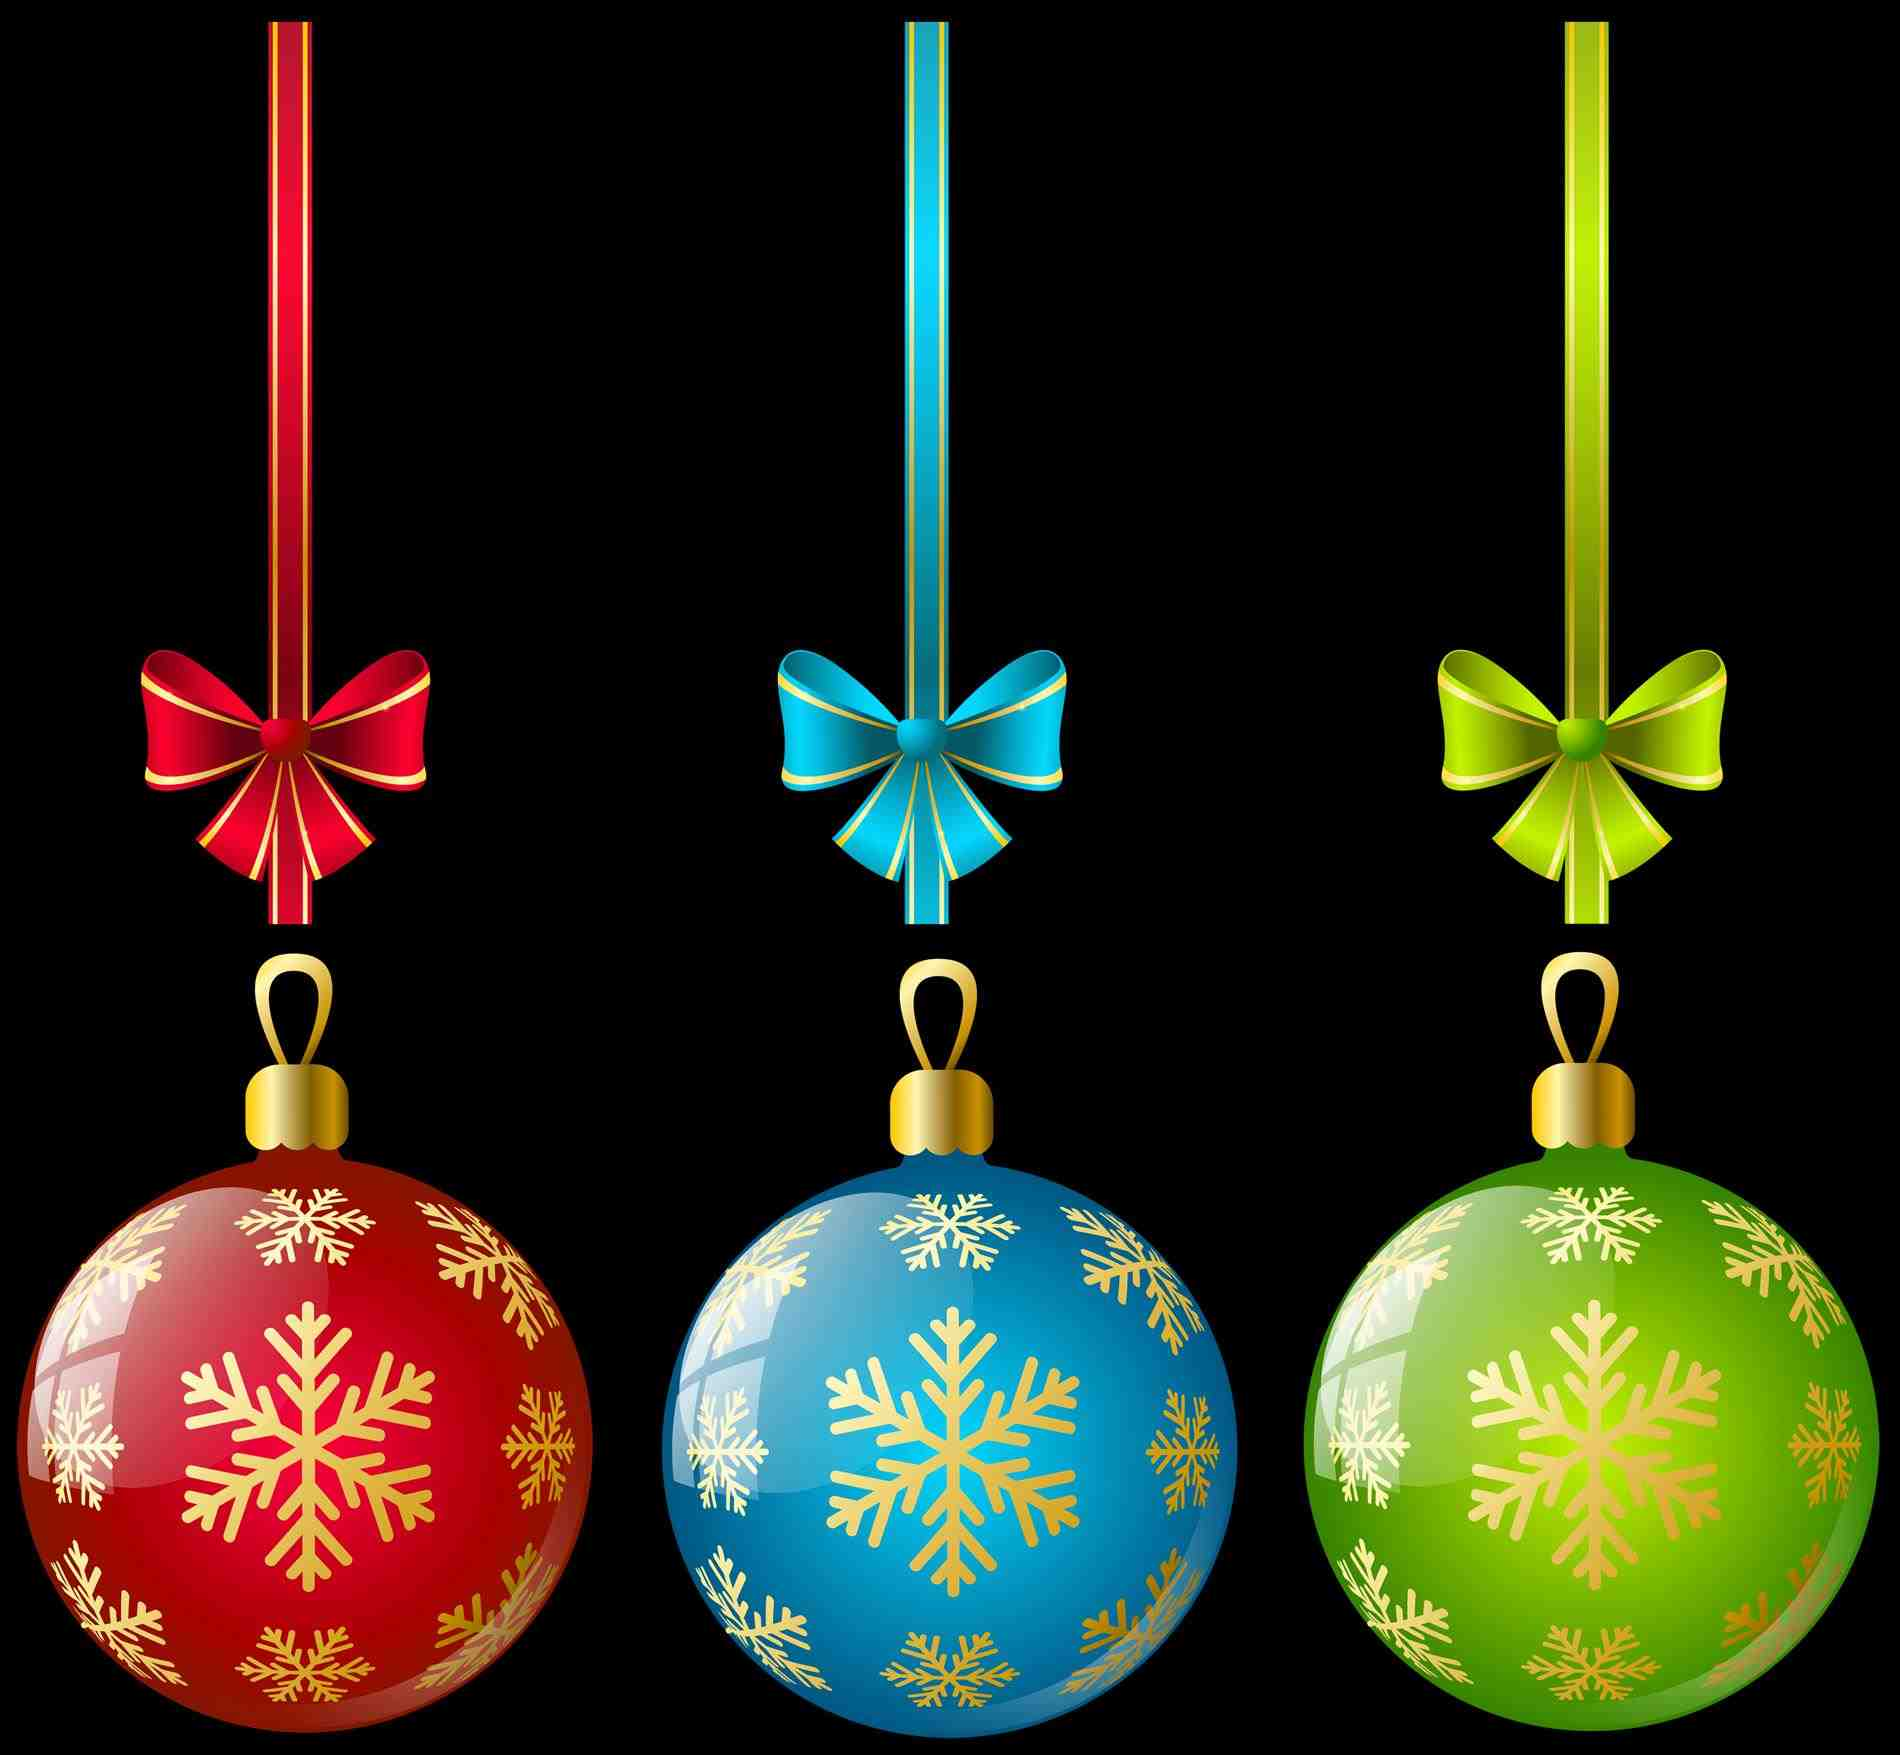 1900x1755 Decorations Picture Christmas Ornament Border Clip Art